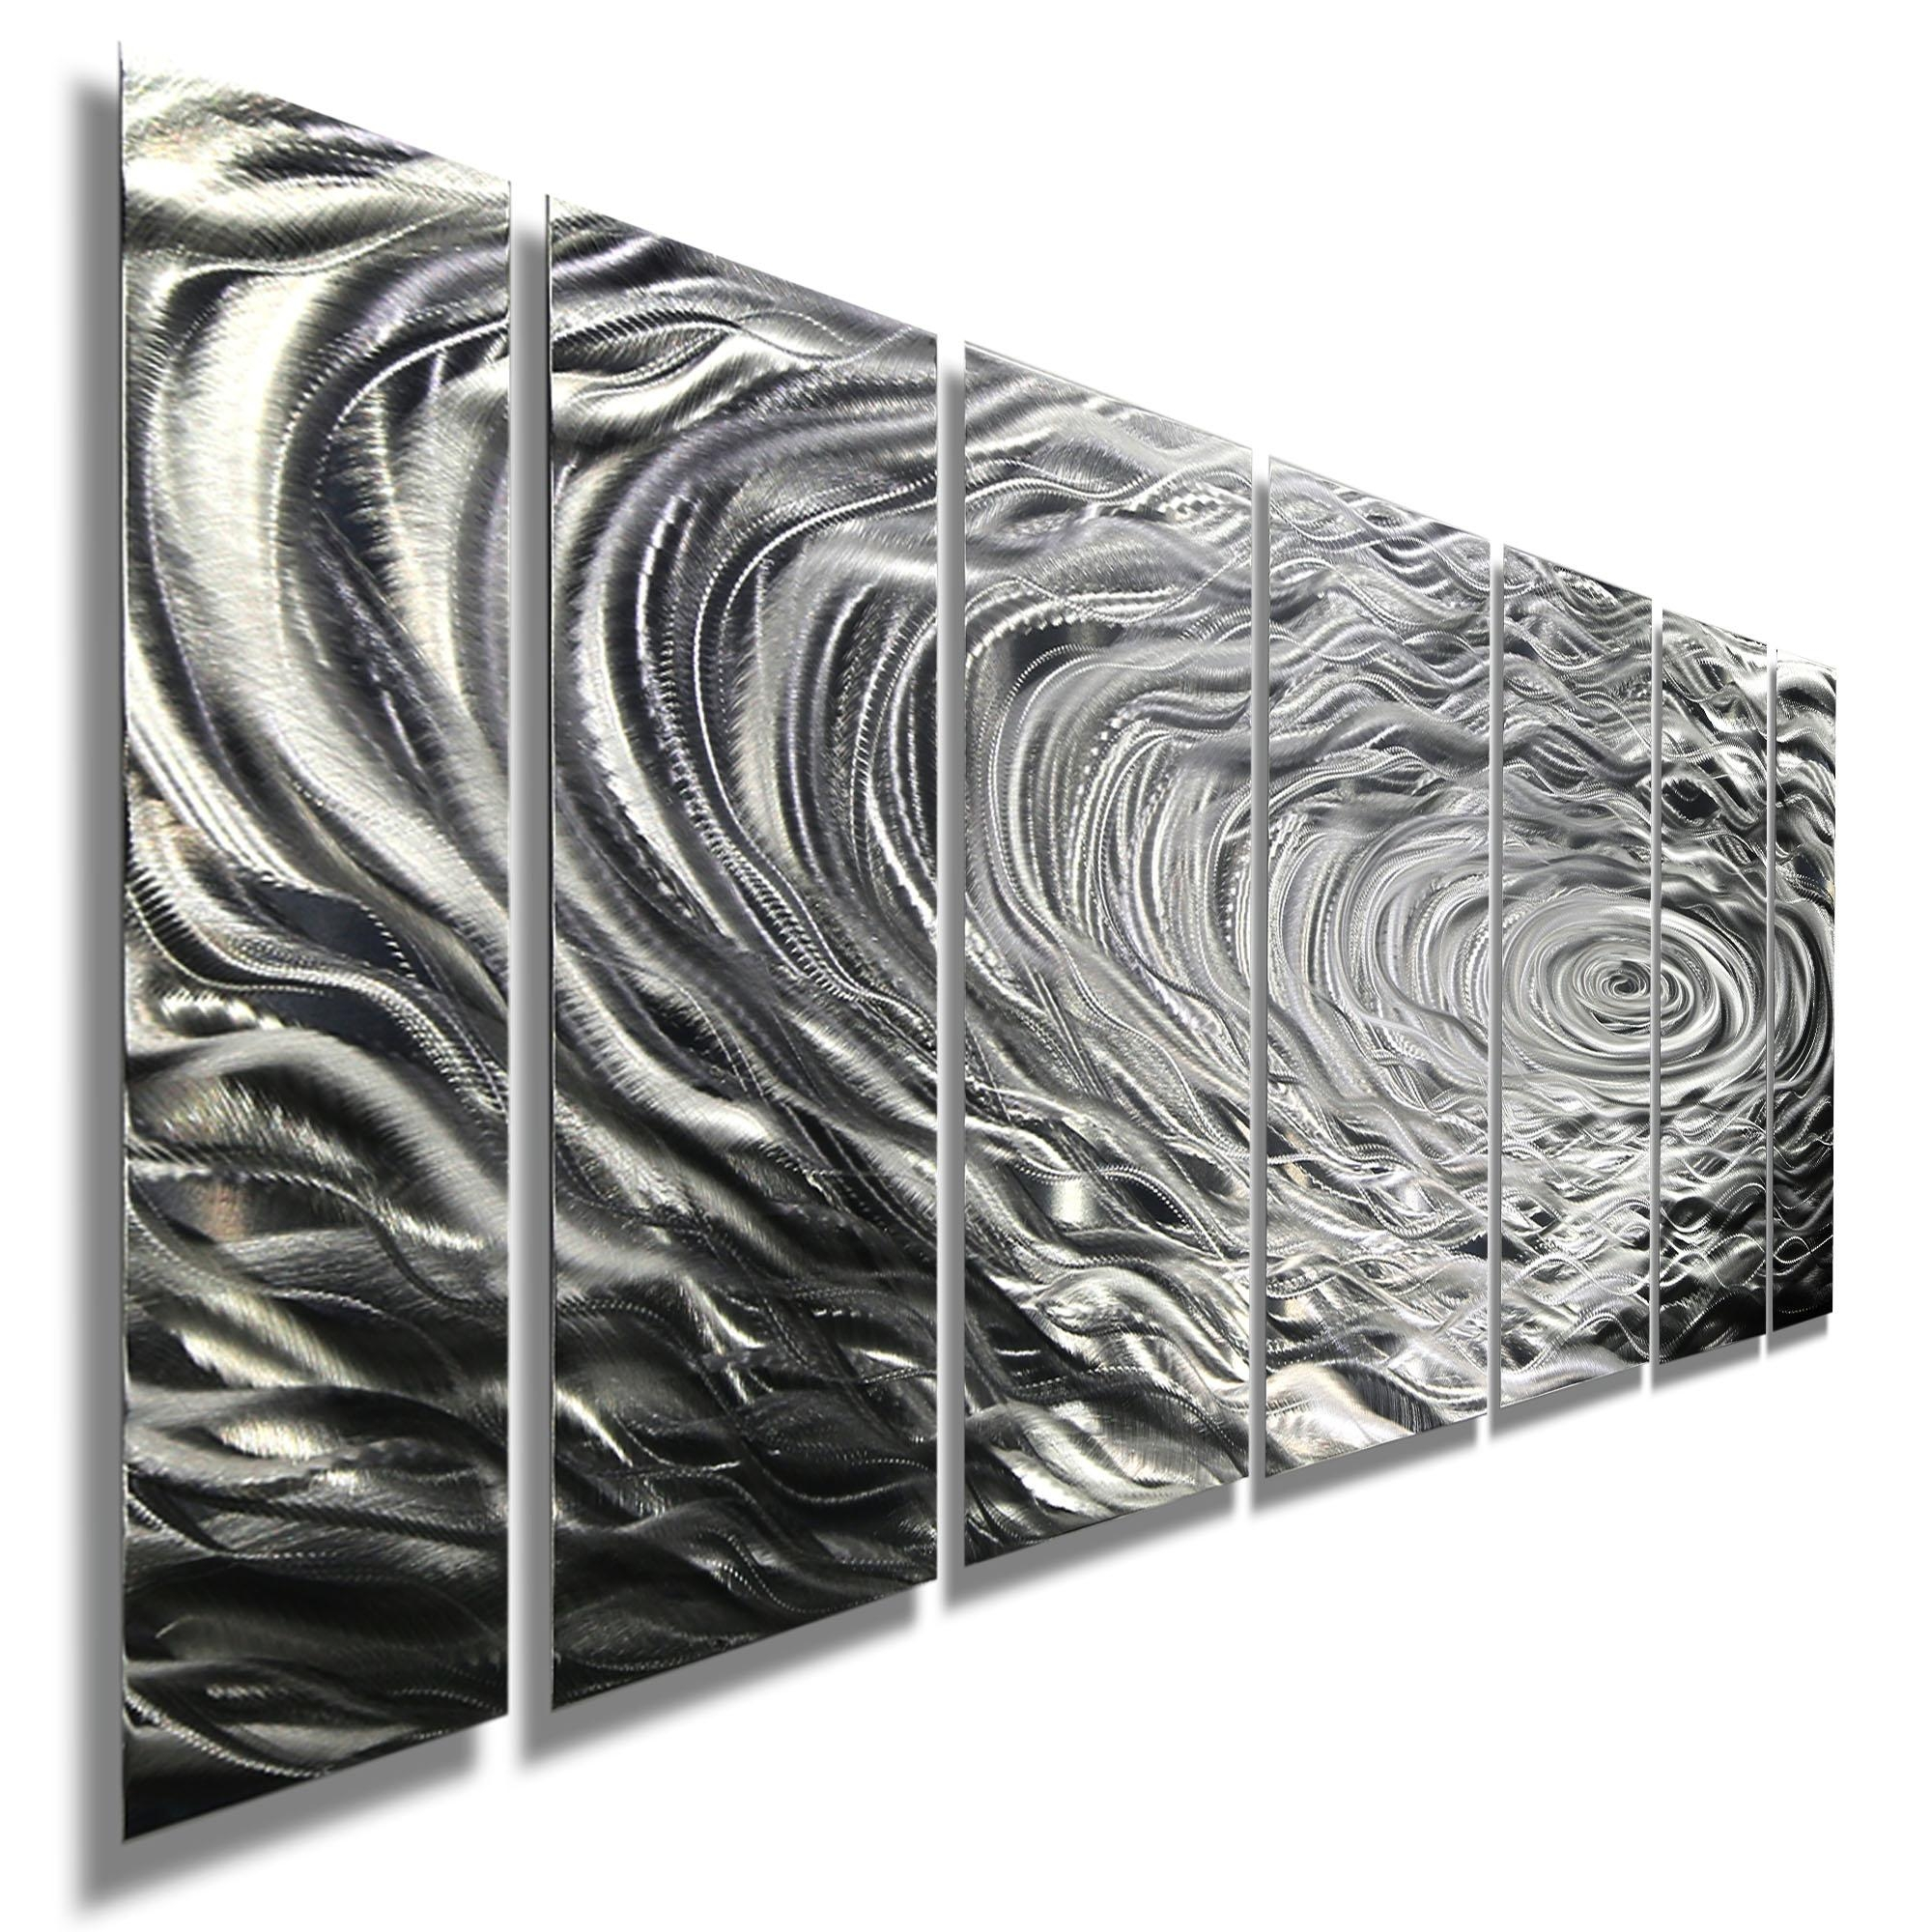 Ripple Effect Xl – Silver Abstract Corporate Metal Wall Art Decor Inside Black Silver Wall Art (View 4 of 20)